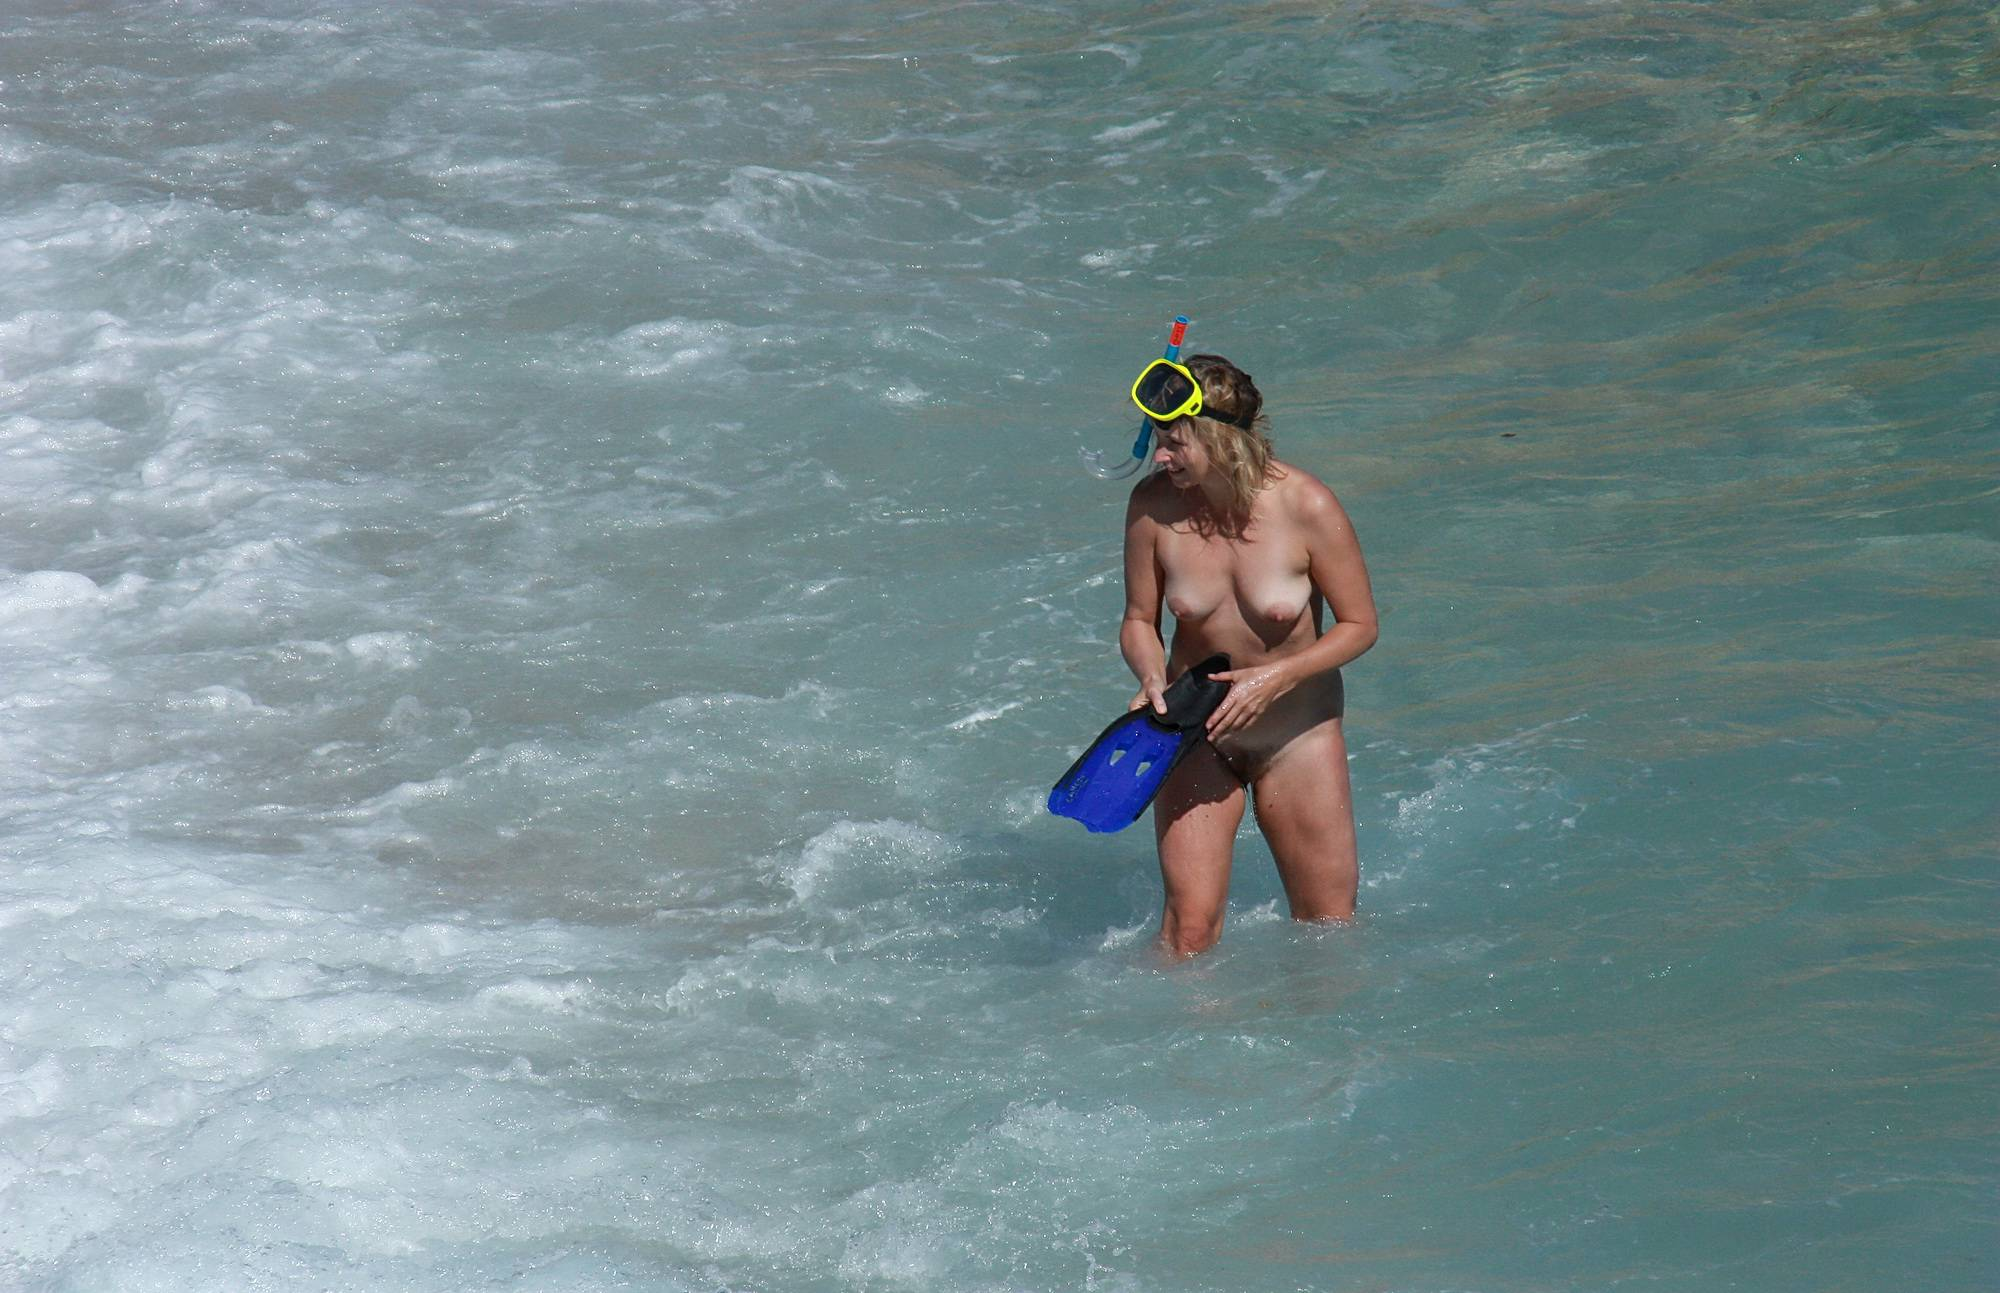 Pure Nudism Images Snorkeling For Treasures - 3